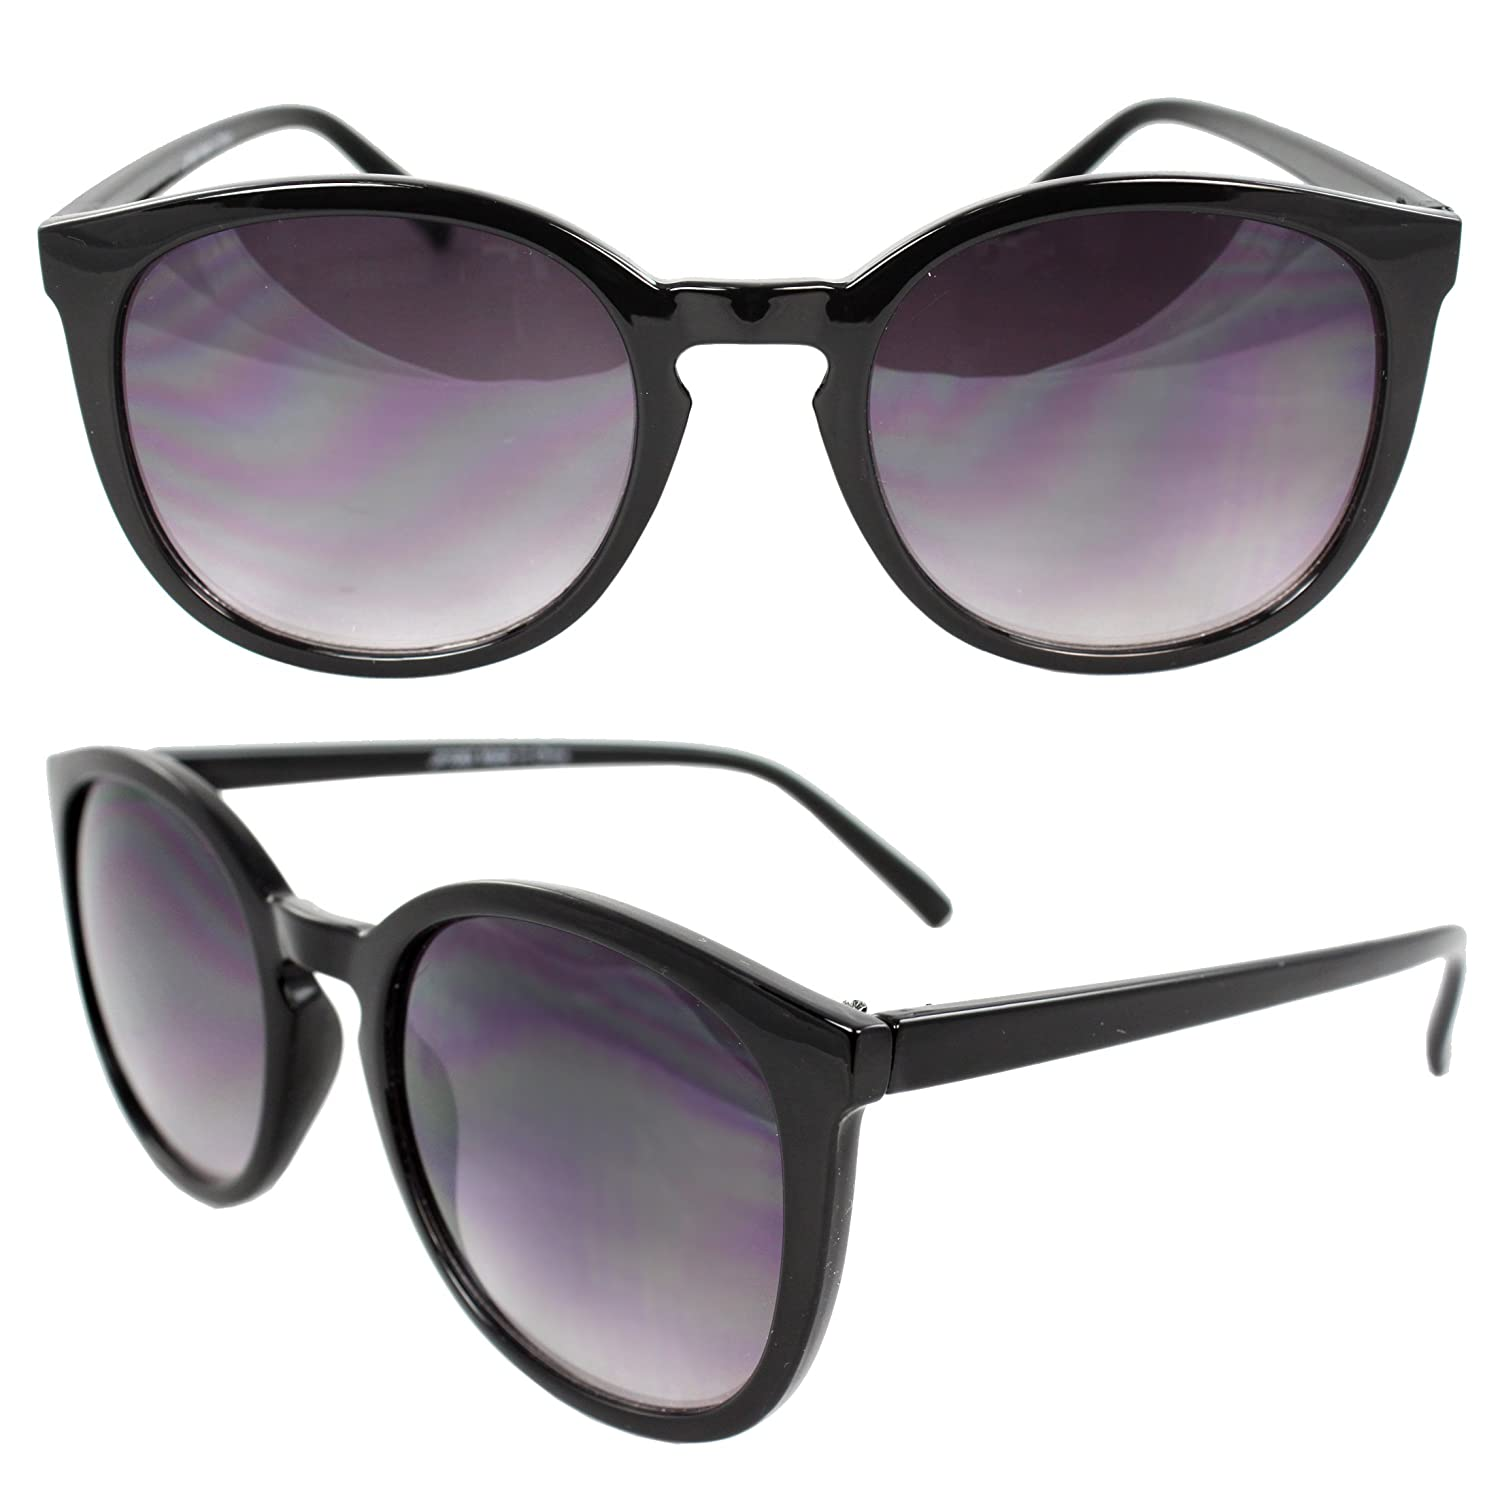 SWG Eyewear Retro Oval Gangnam Style Fashion Sunglasses Black Frame Purple Black Lenses for Women and Men